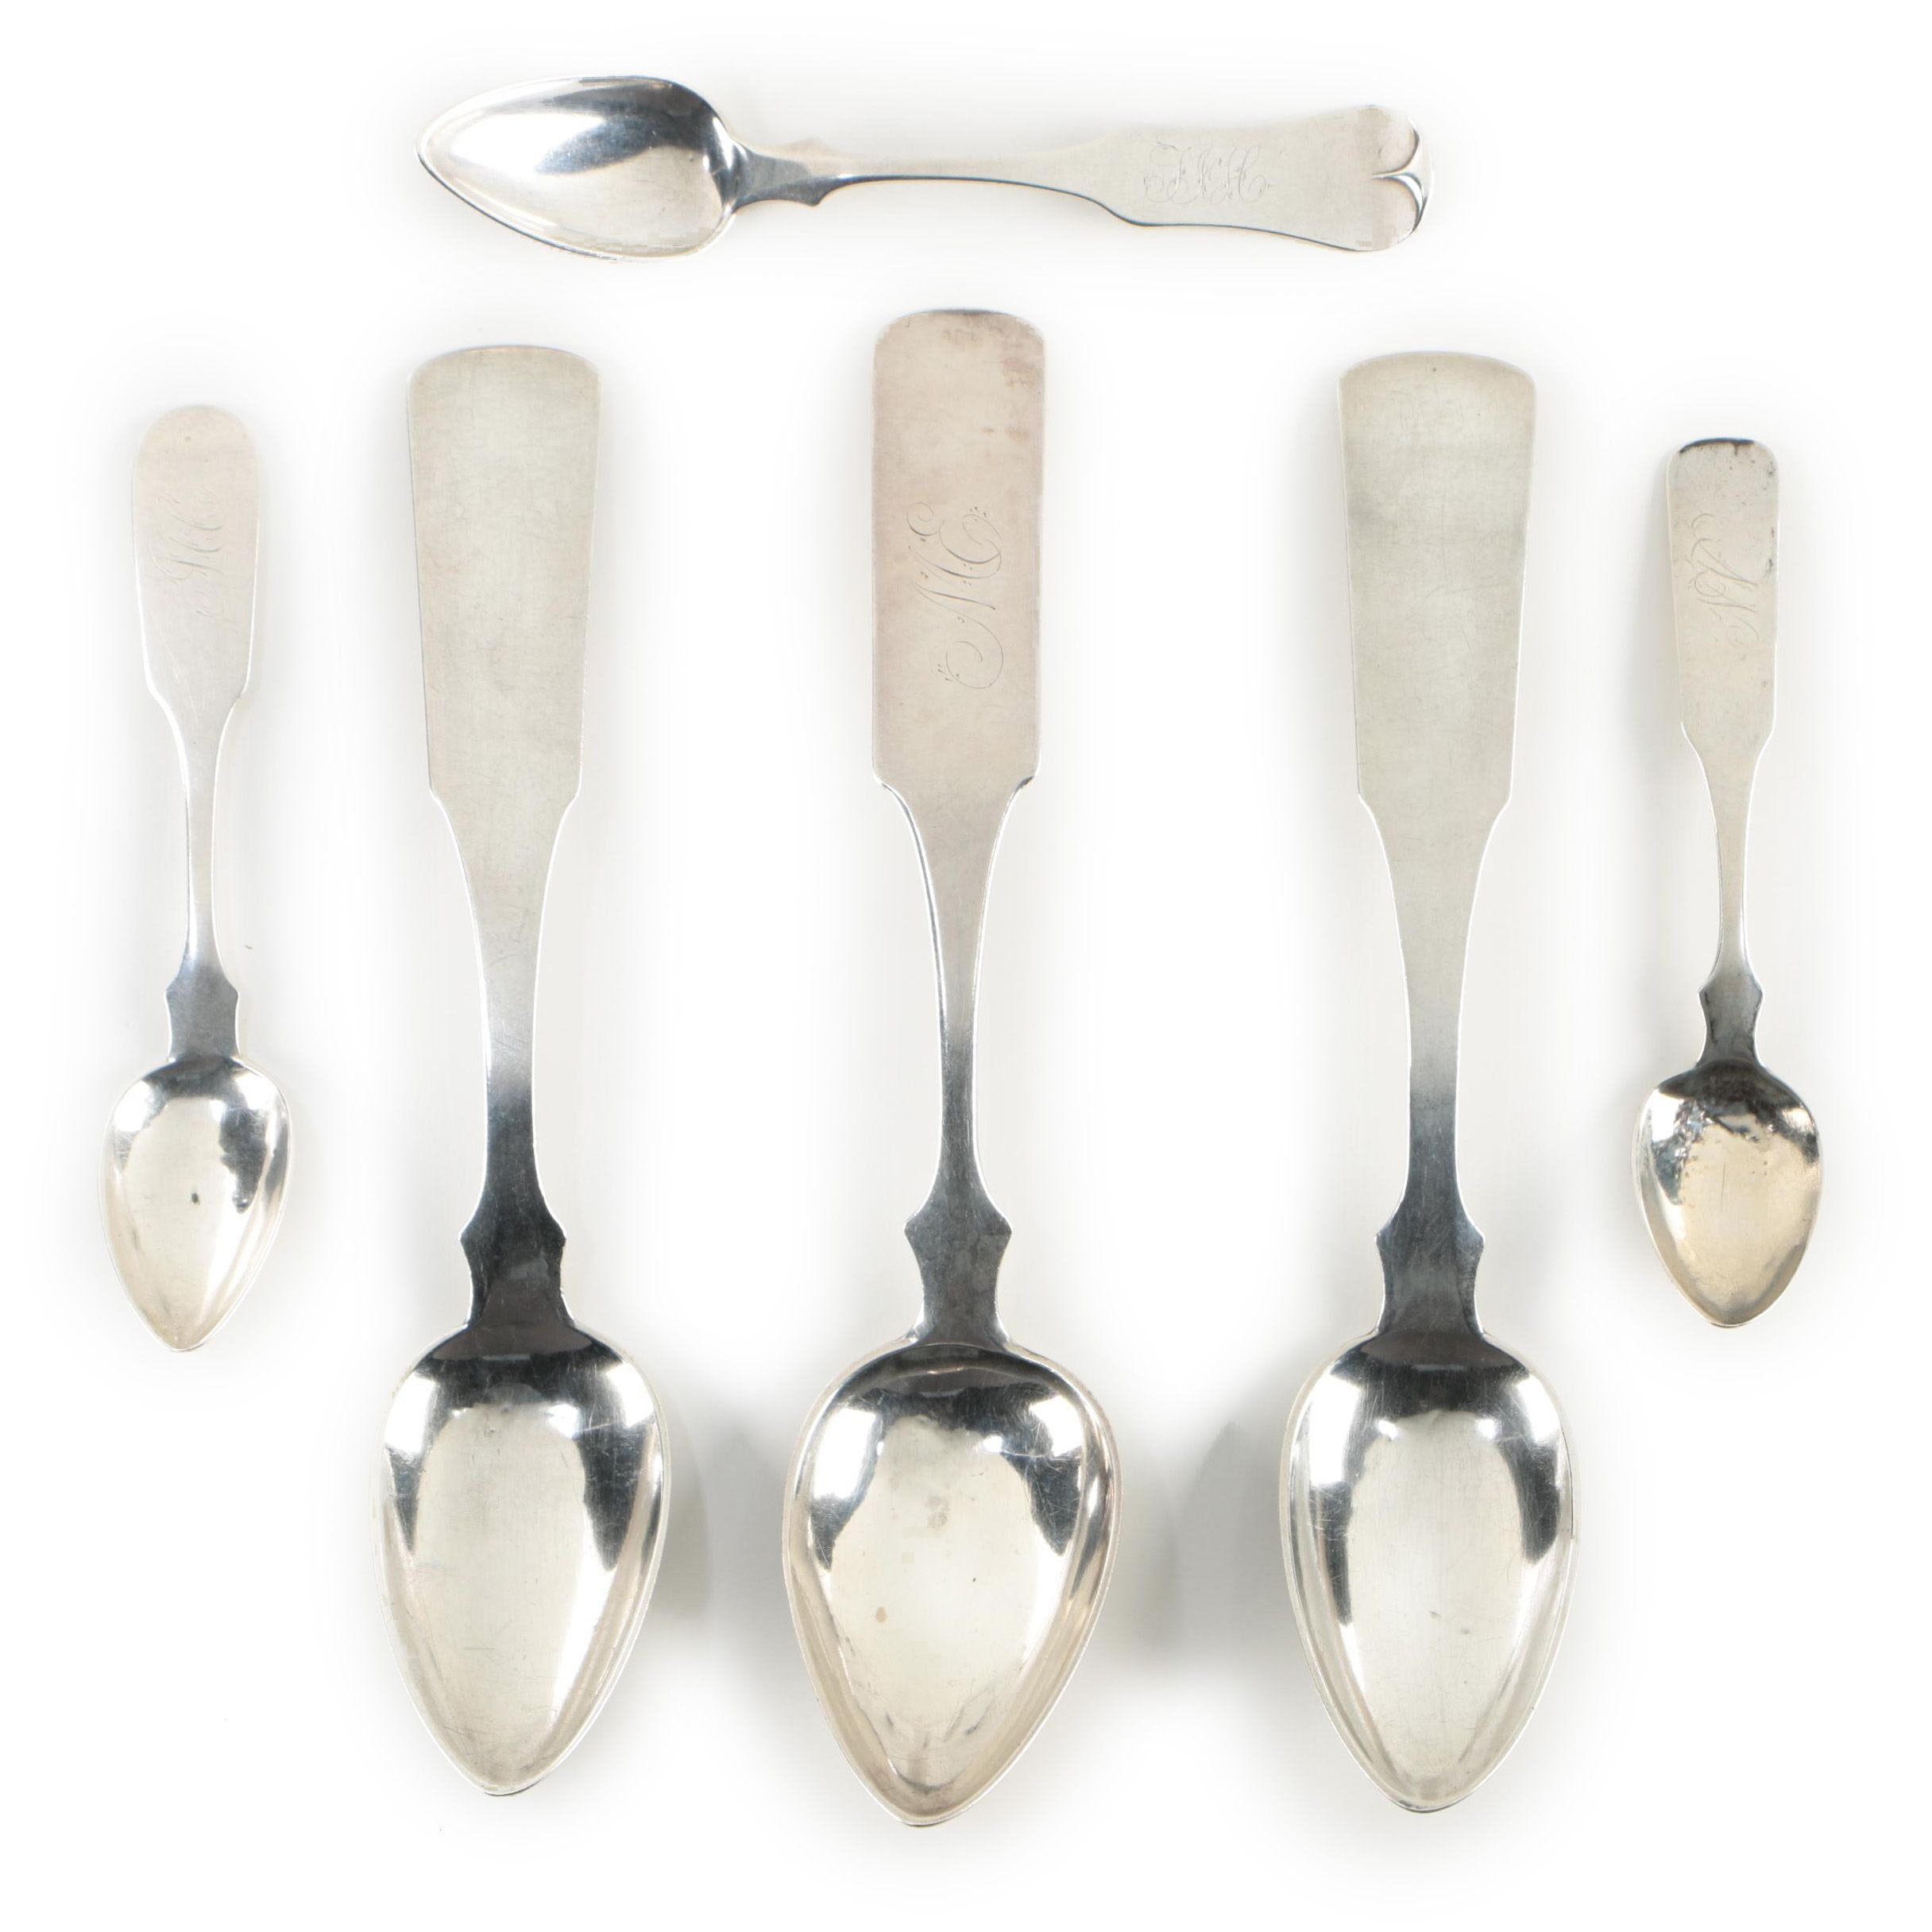 Nathan Lord Hazen Cincinnati Coin Silver Teaspoons and Serving Spoons, 1831-1851